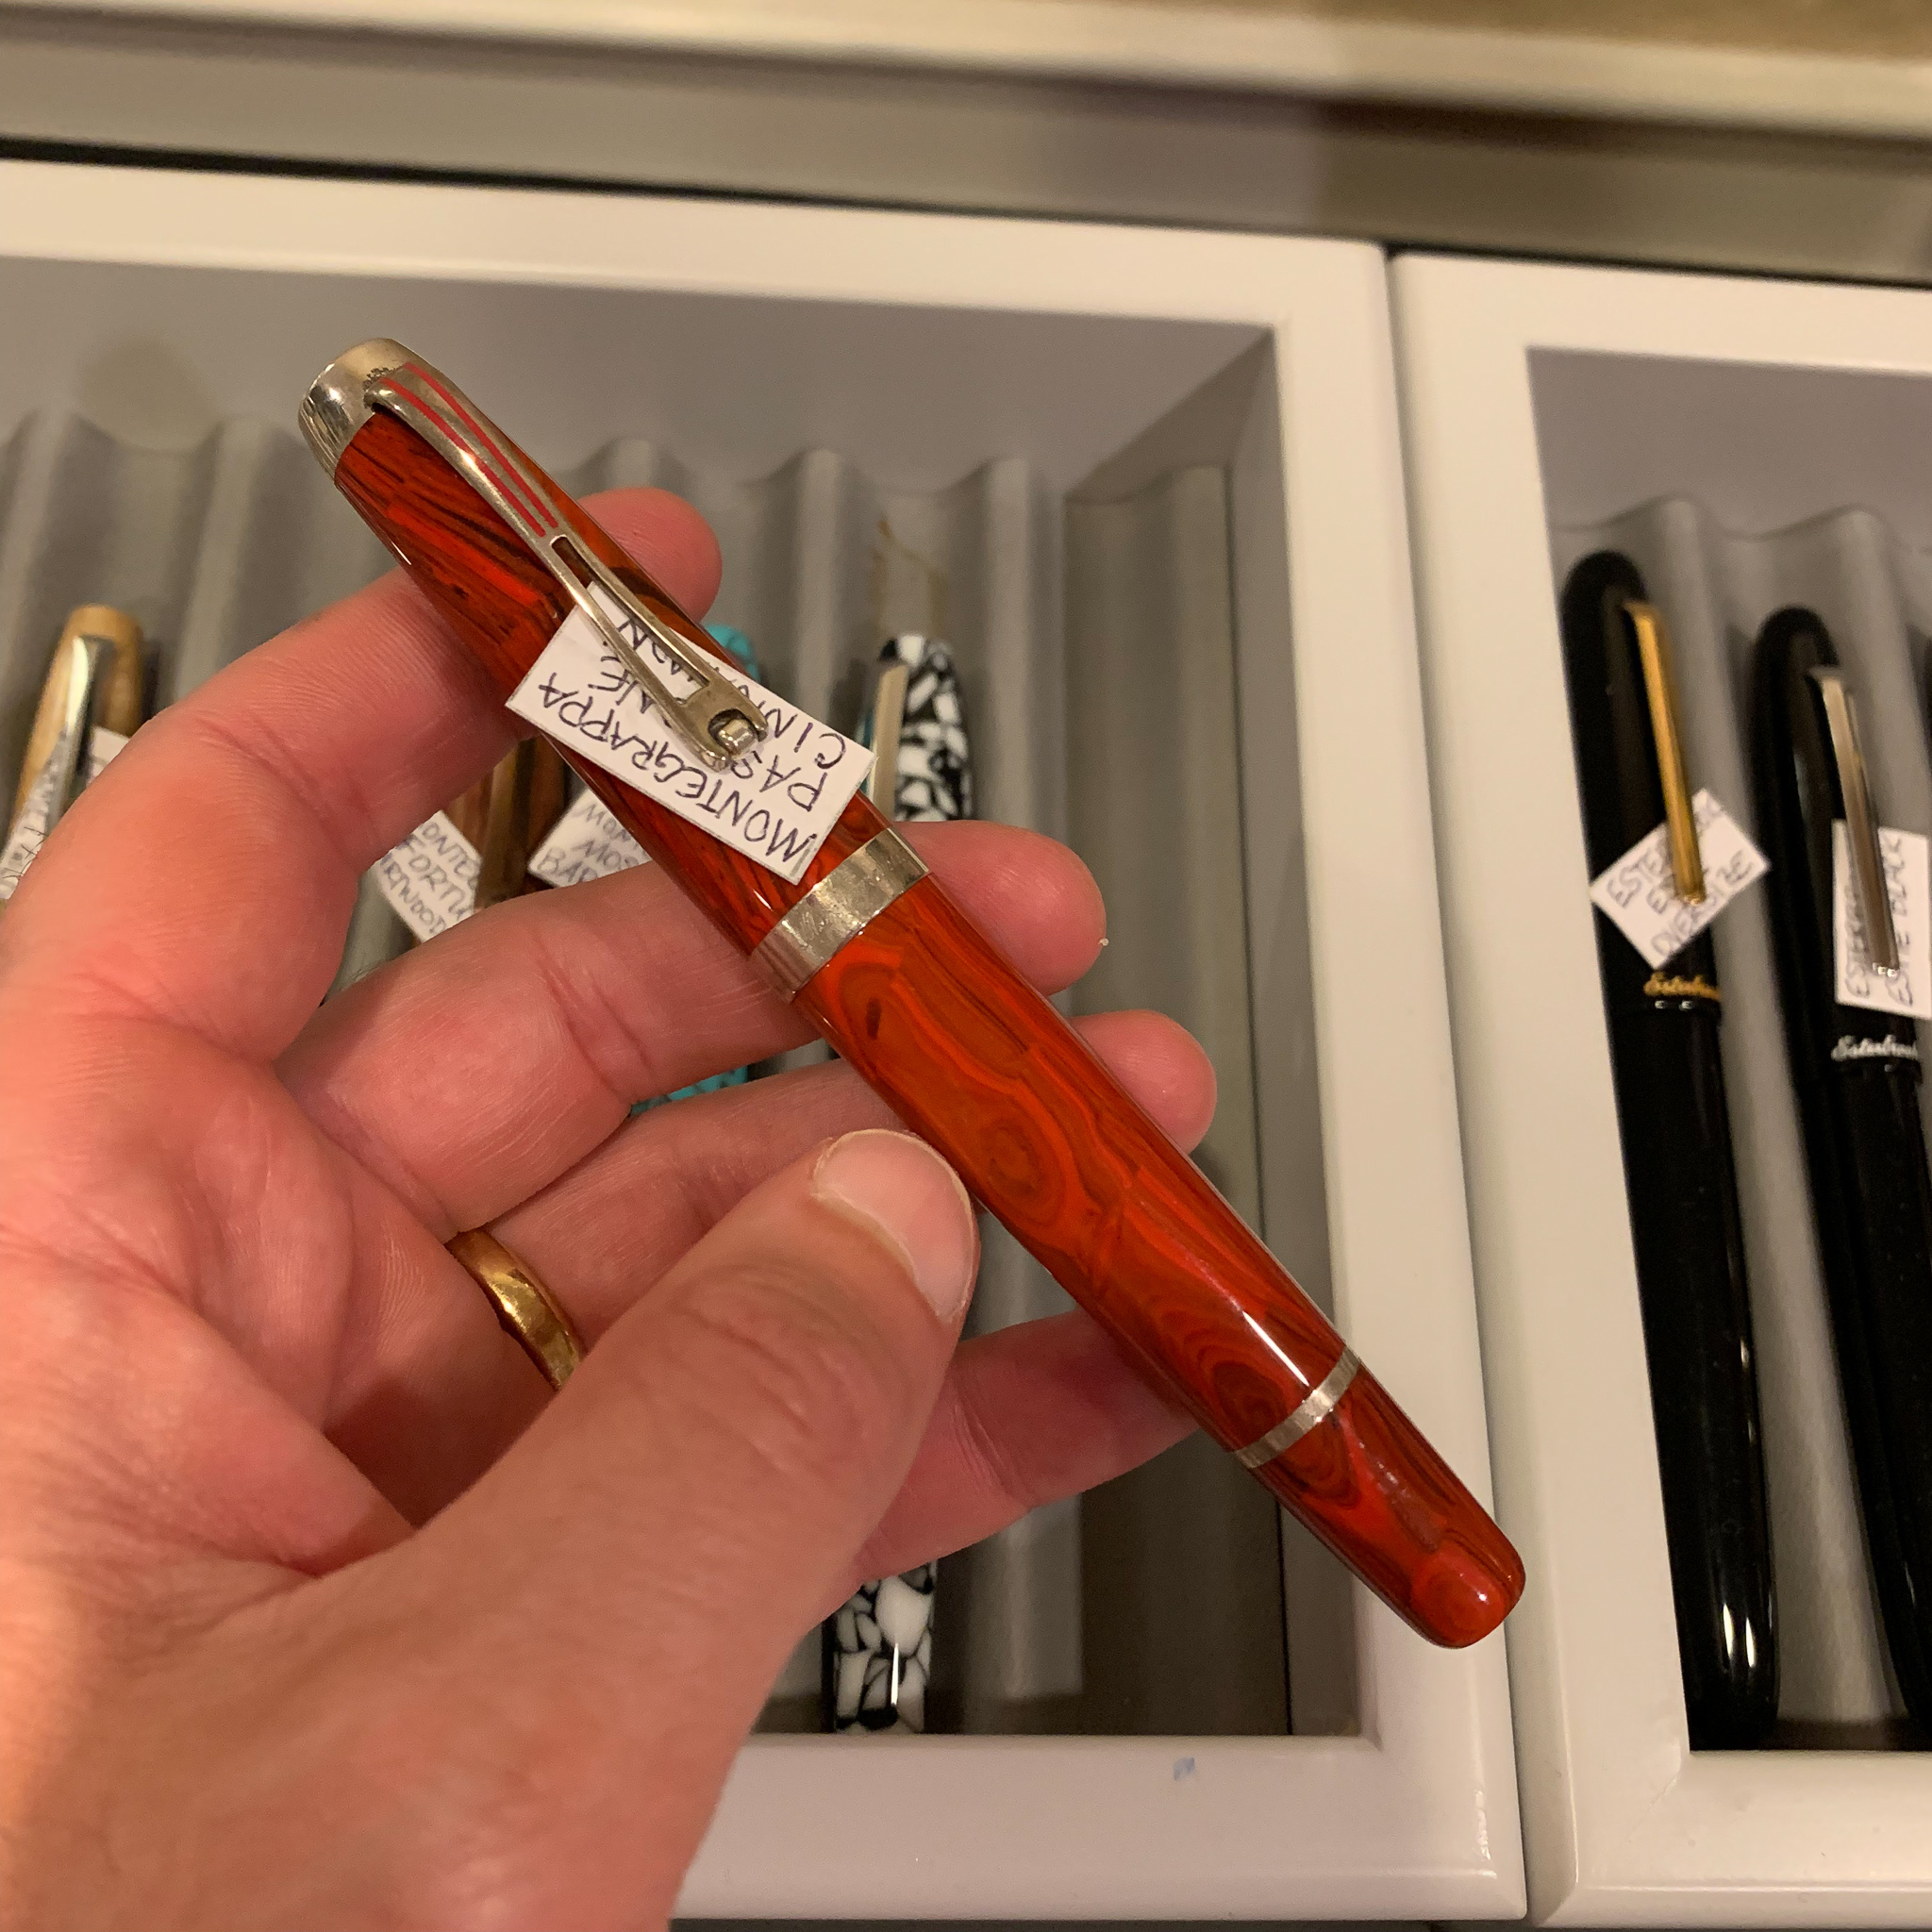 As you know, I'm behind the  Vanness Pens  table all weekend, and while our stock of ink and paper is somewhat depleted, Sunday is a great day to get a good deal on a pen, like this discontinued  Montegrappa Passione  that has been sitting in front of me calling my name for two days straight. Someone come buy this pen before I do! You may remember that I reviewed this exact model/color combination a while back.